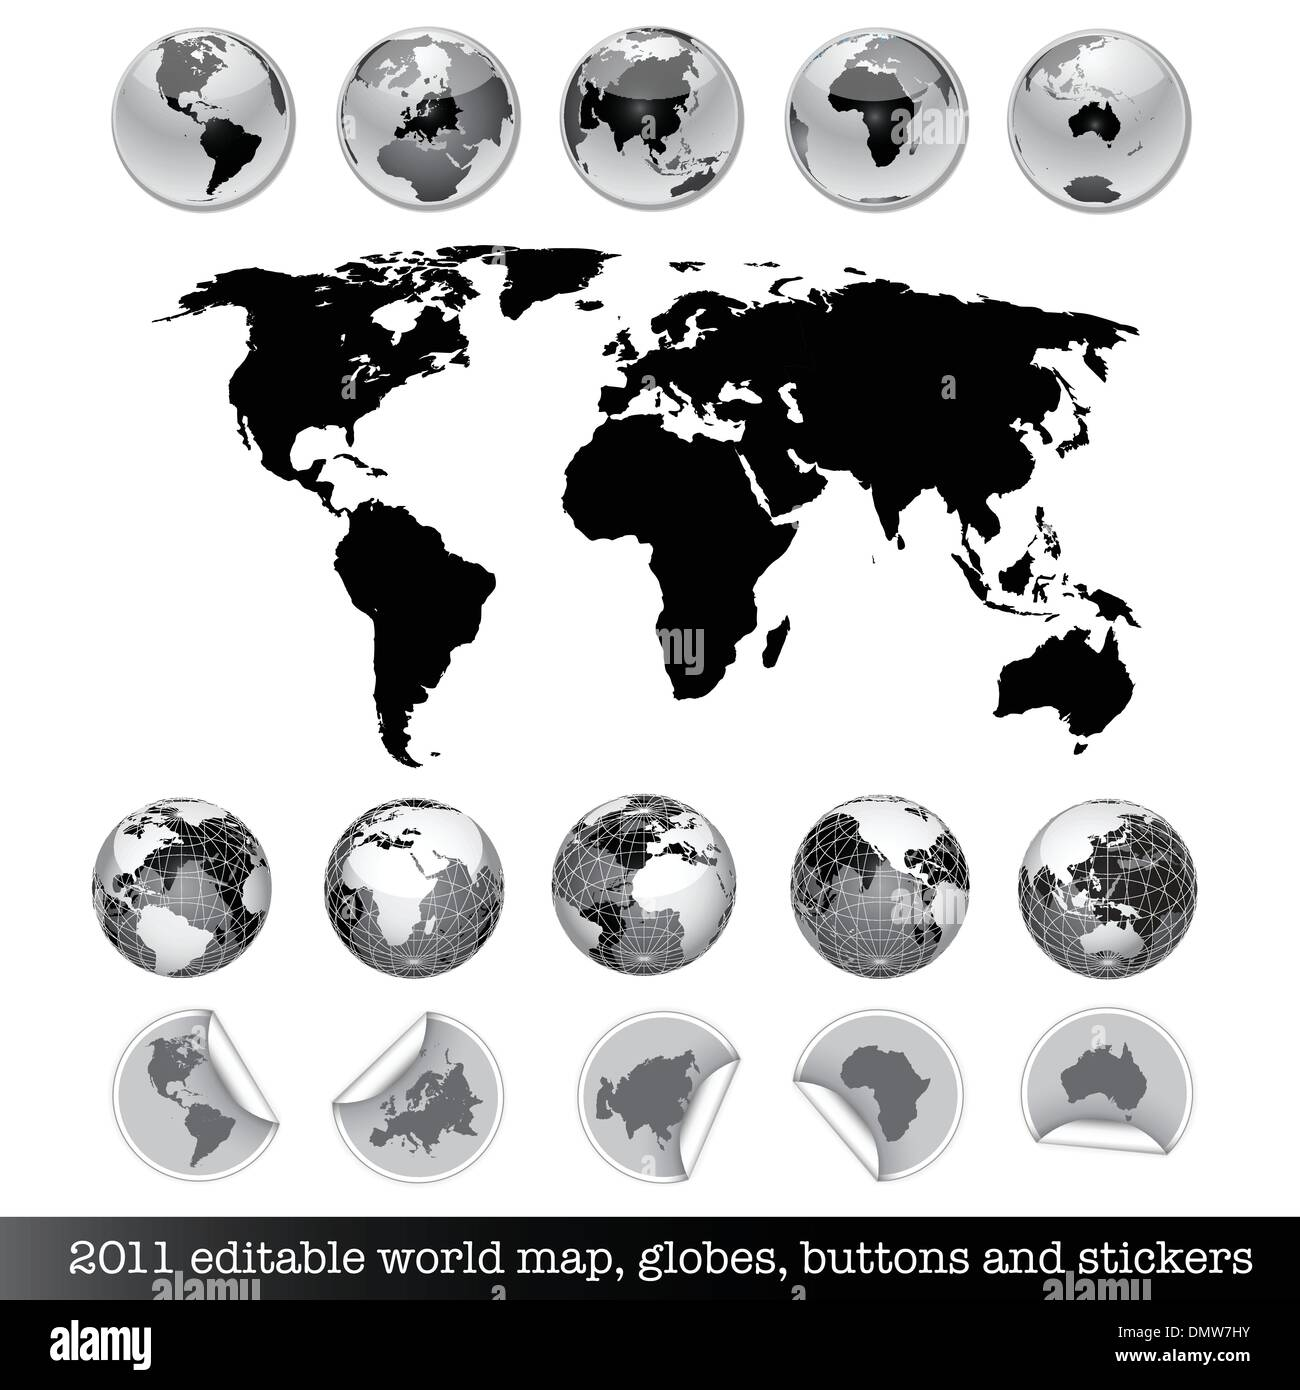 Editable world map earth globes buttons and stickers stock vector editable world map earth globes buttons and stickers gumiabroncs Images